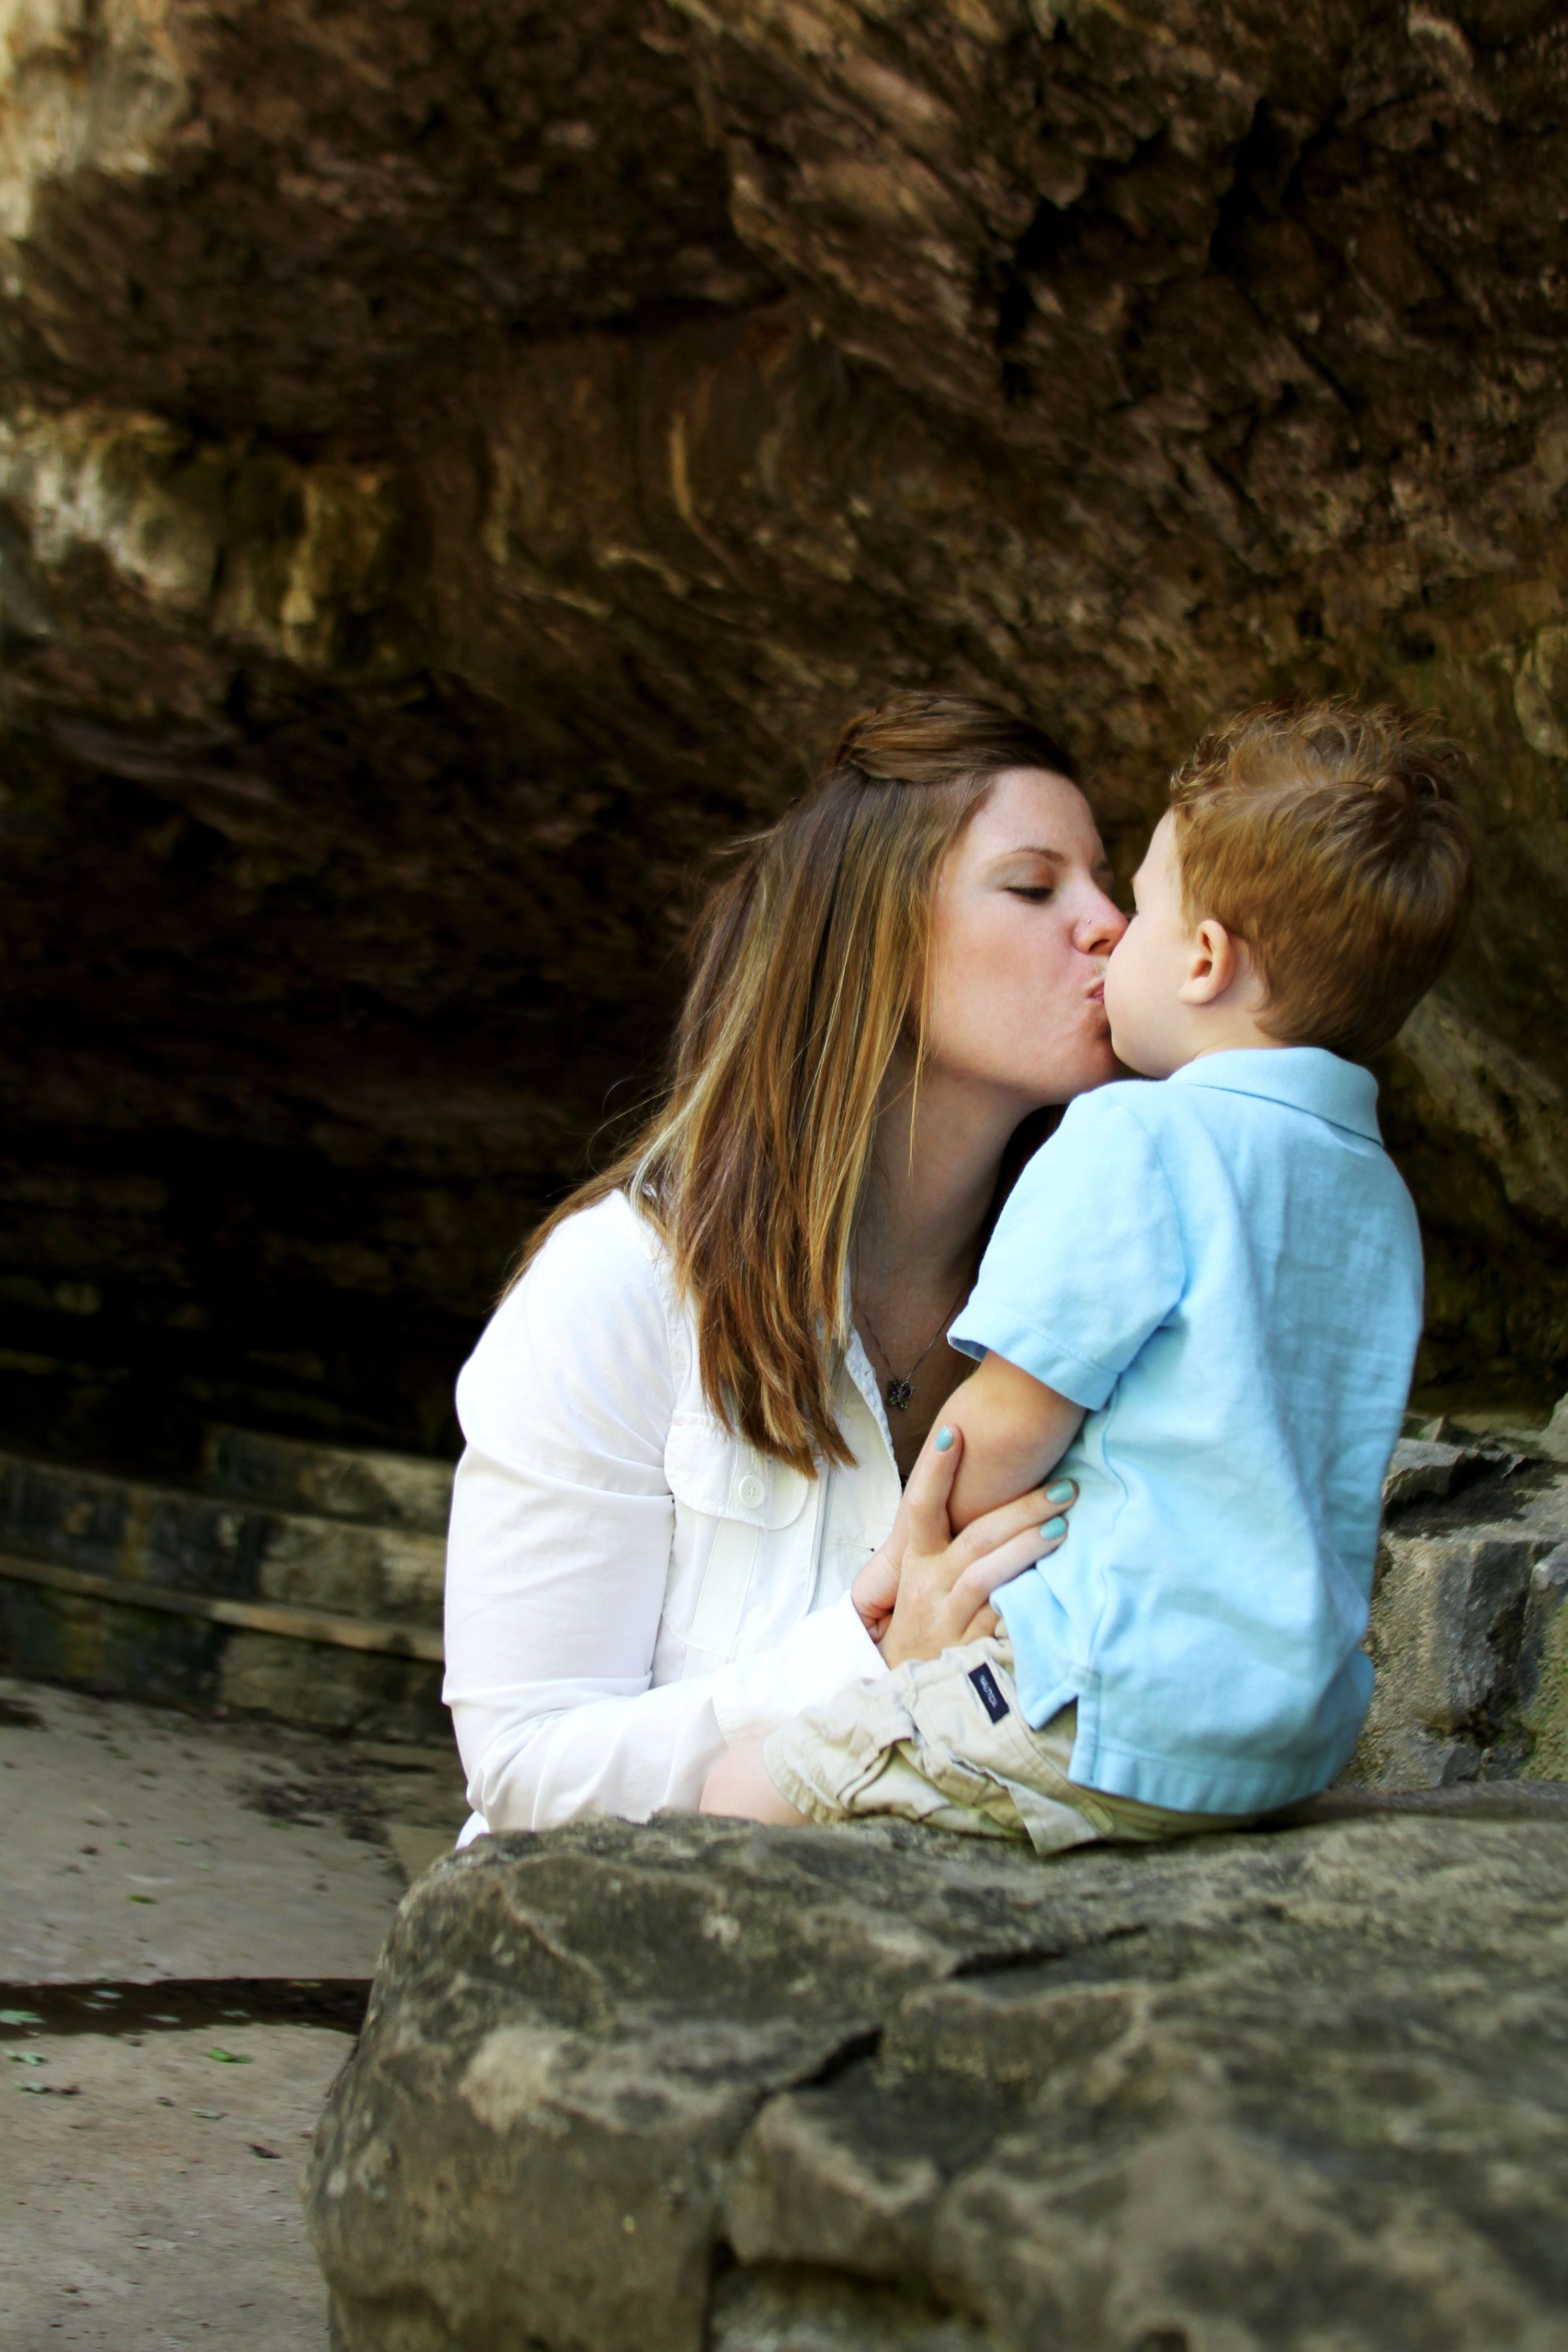 10 Wonderful Mother And Son Photo Ideas mother son pose pic ideas pinterest mother son poses mother 2020